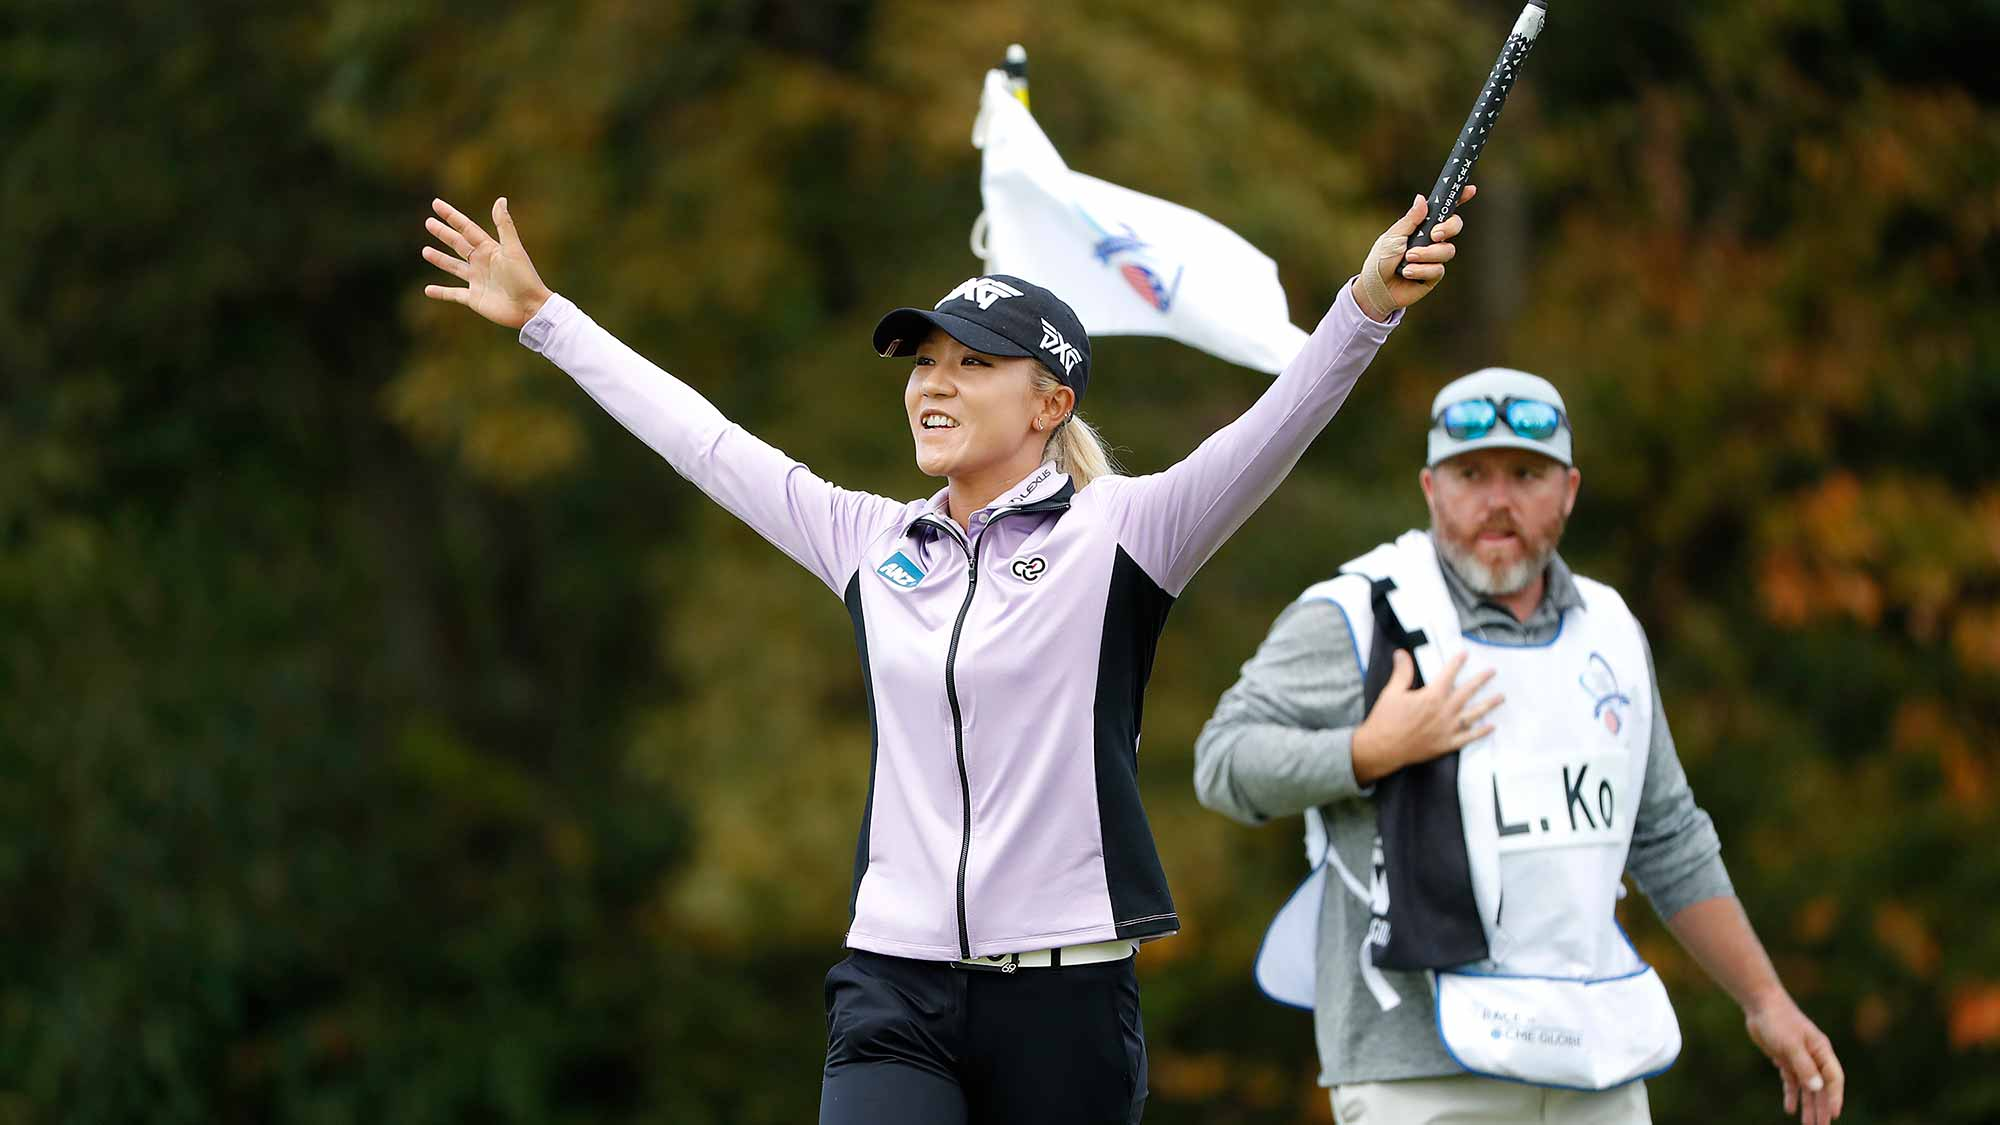 Lydia Ko of New Zealand celebrates on the 18th green after the first round of the TOTO Japan Classic at Seta Golf Course on November 02, 2018 in Otsu, Shiga, Japan